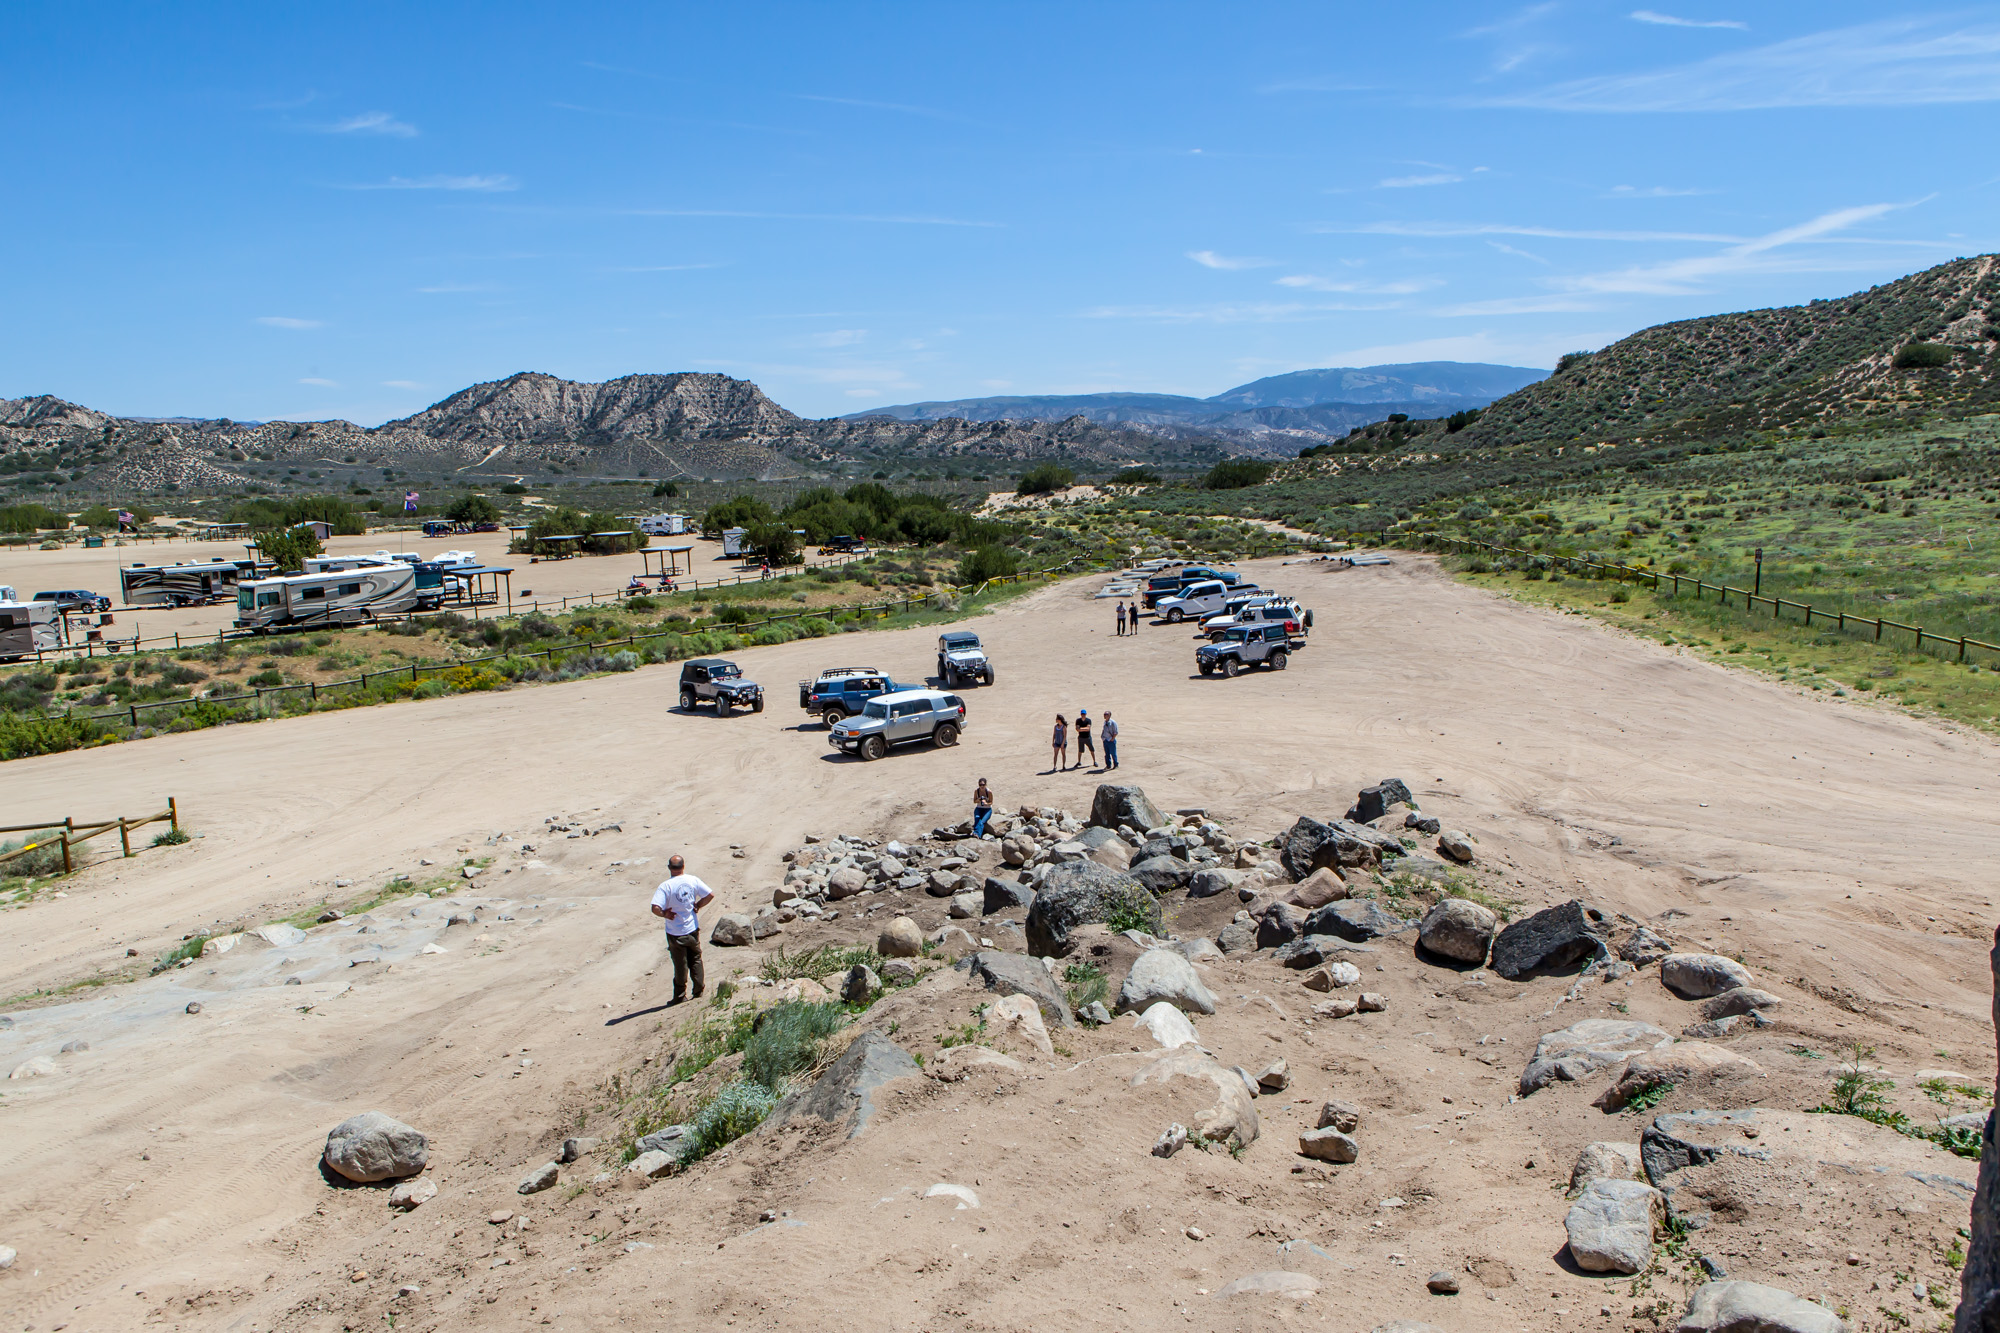 My first Landops meetup inside the Hungry Valley State Vehicular Recreation Area